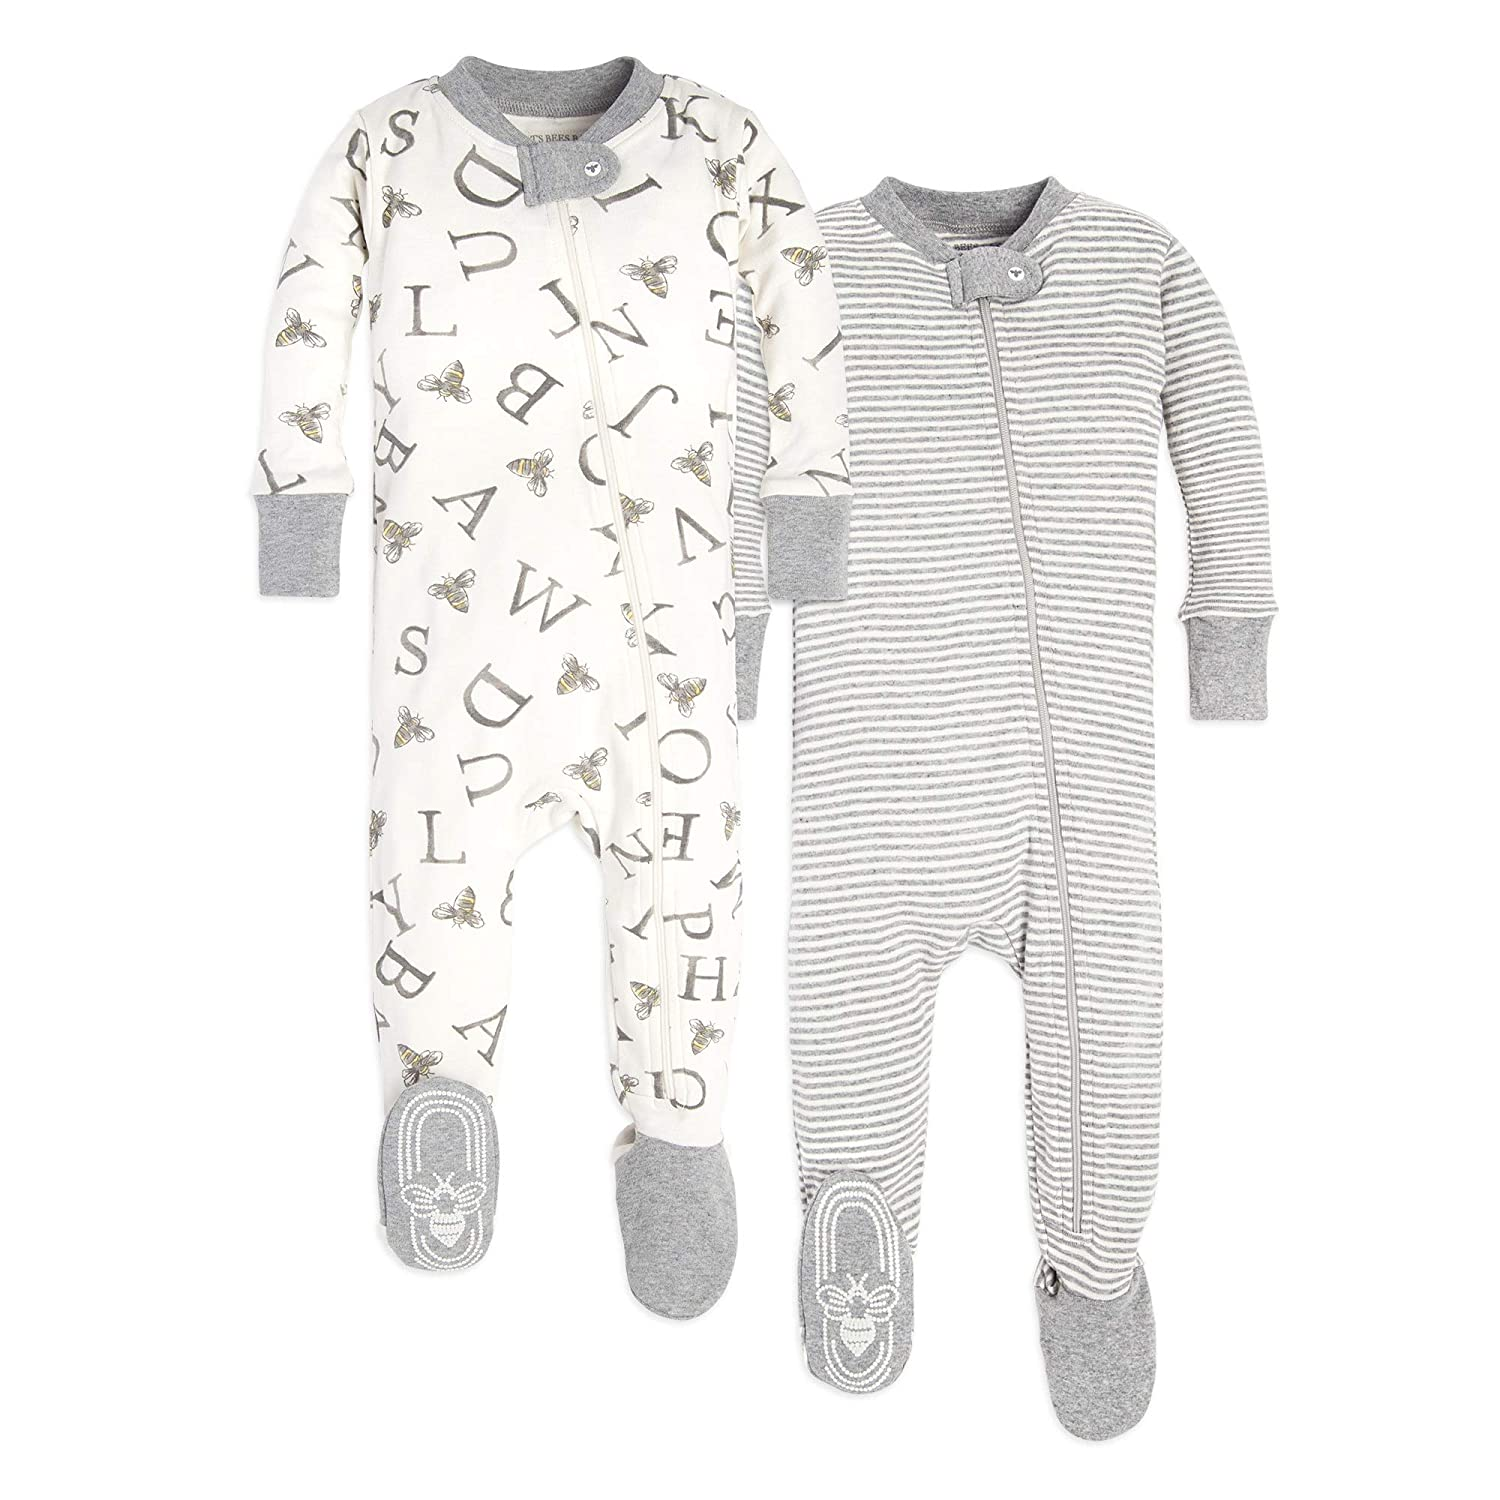 Burt's Bees Baby Unisex Pajamas, Set of 2, Zip Front Non-Slip Footed Sleeper PJs, 100% Organic Cotton Burt' s Bees Baby LY25452